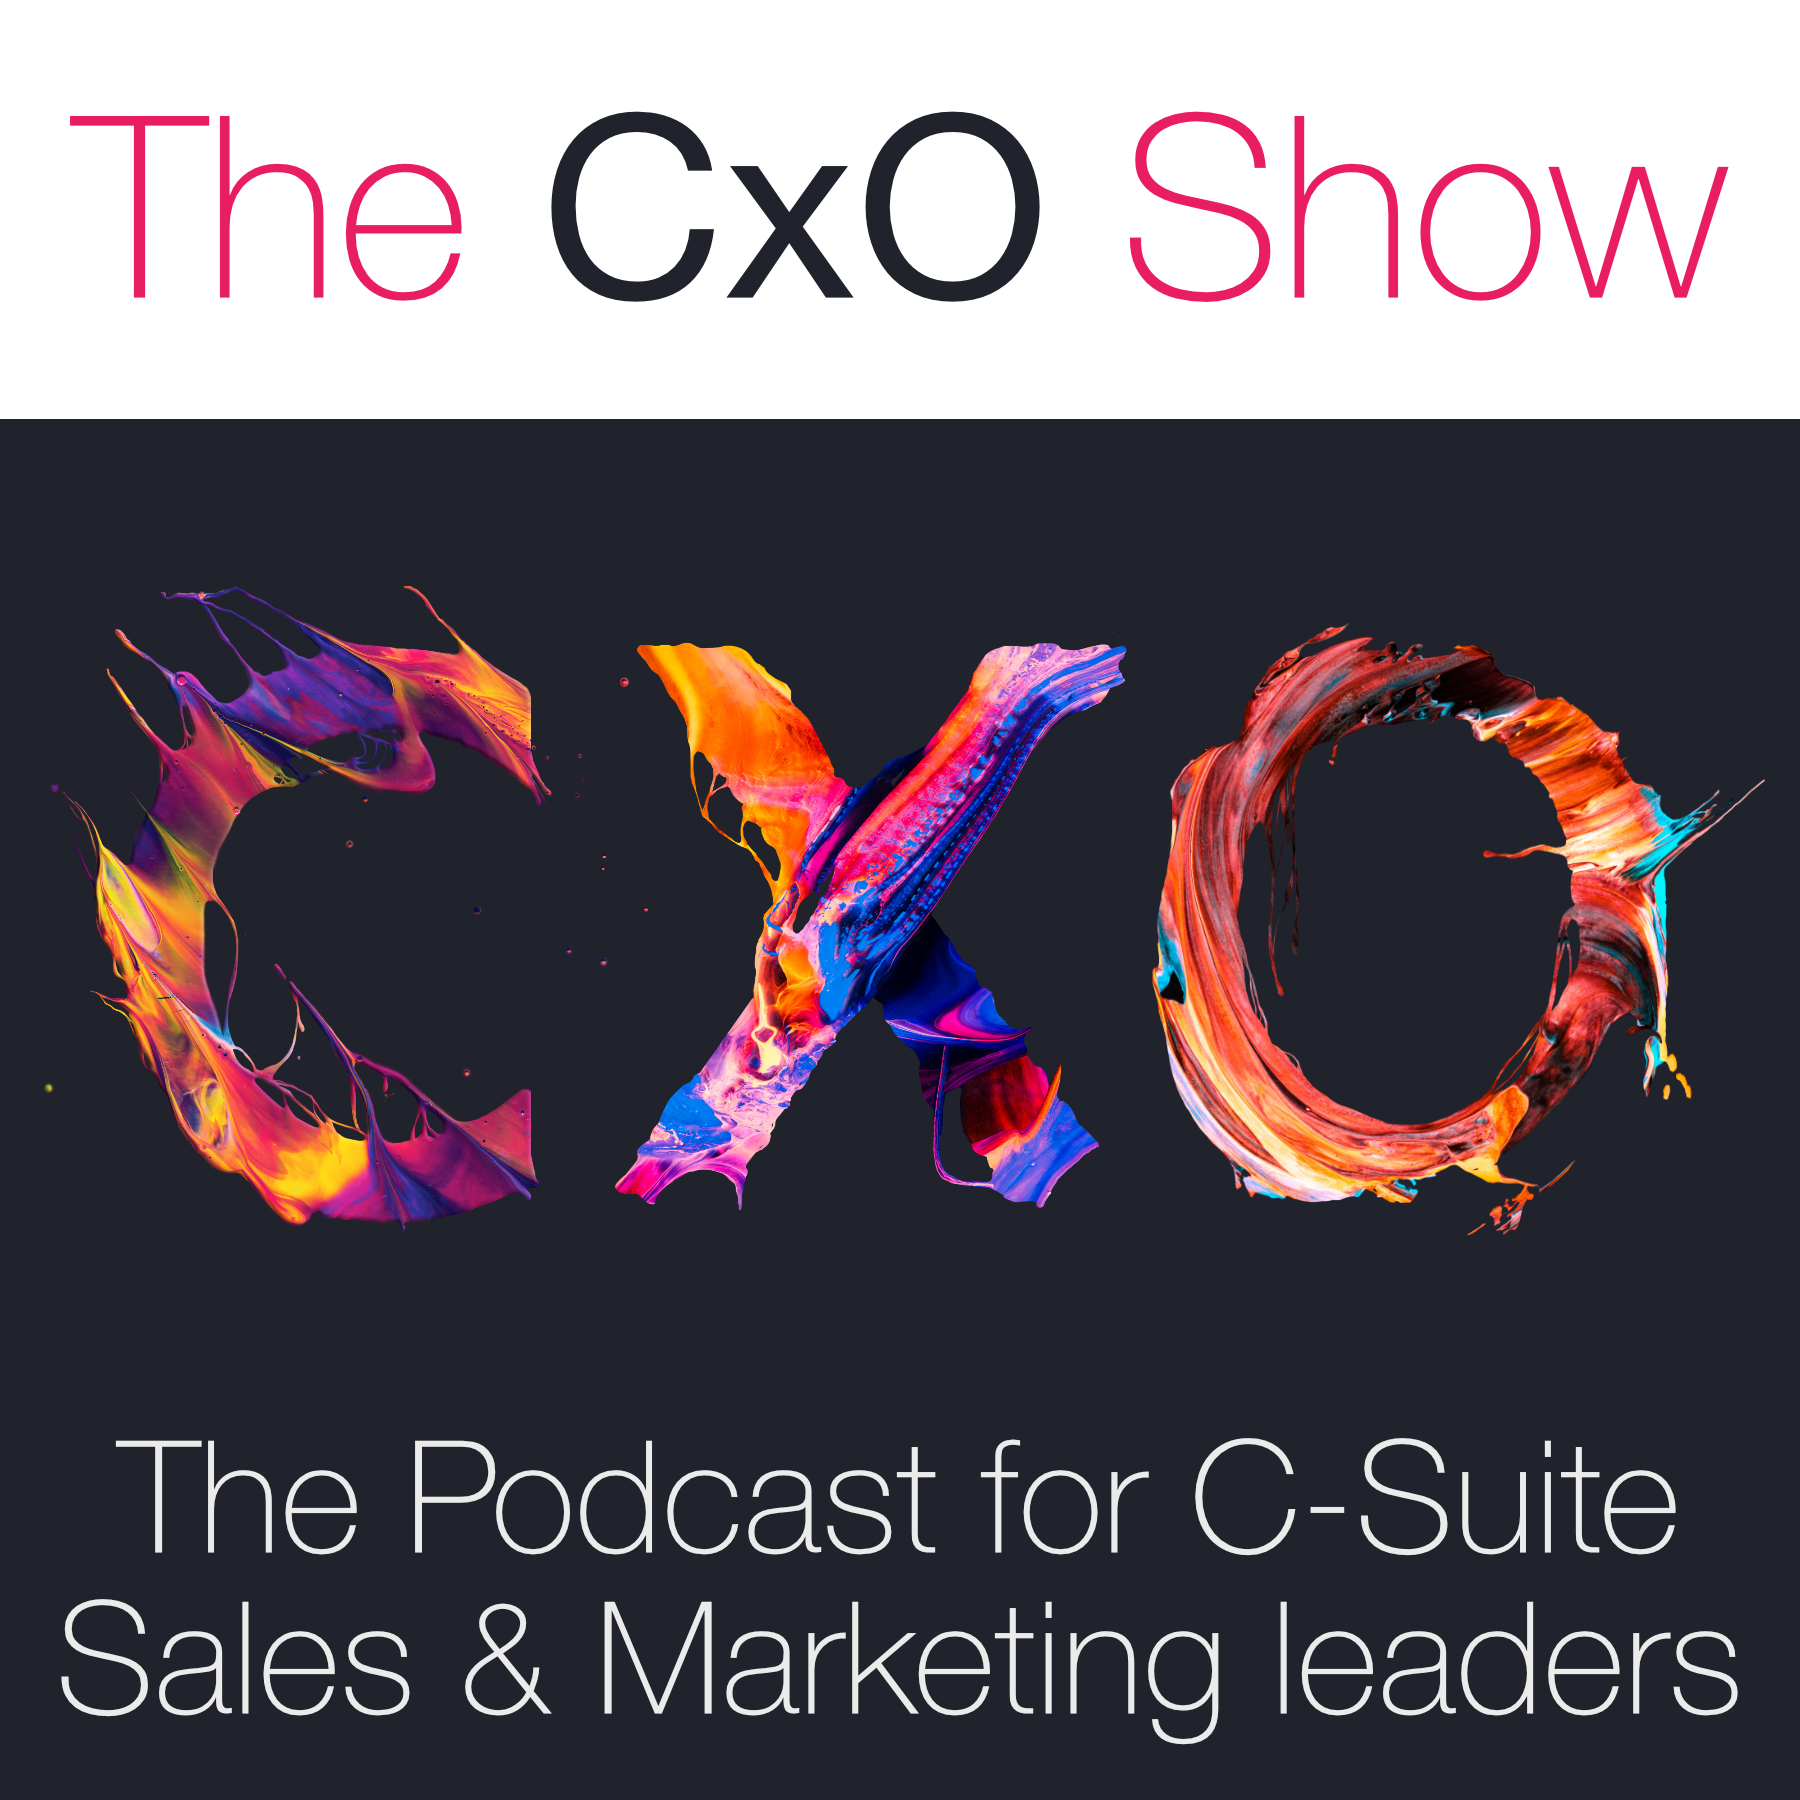 The CxO Show Podcast for Sales and Marketing Leaders with Joanna Perry, Practicology